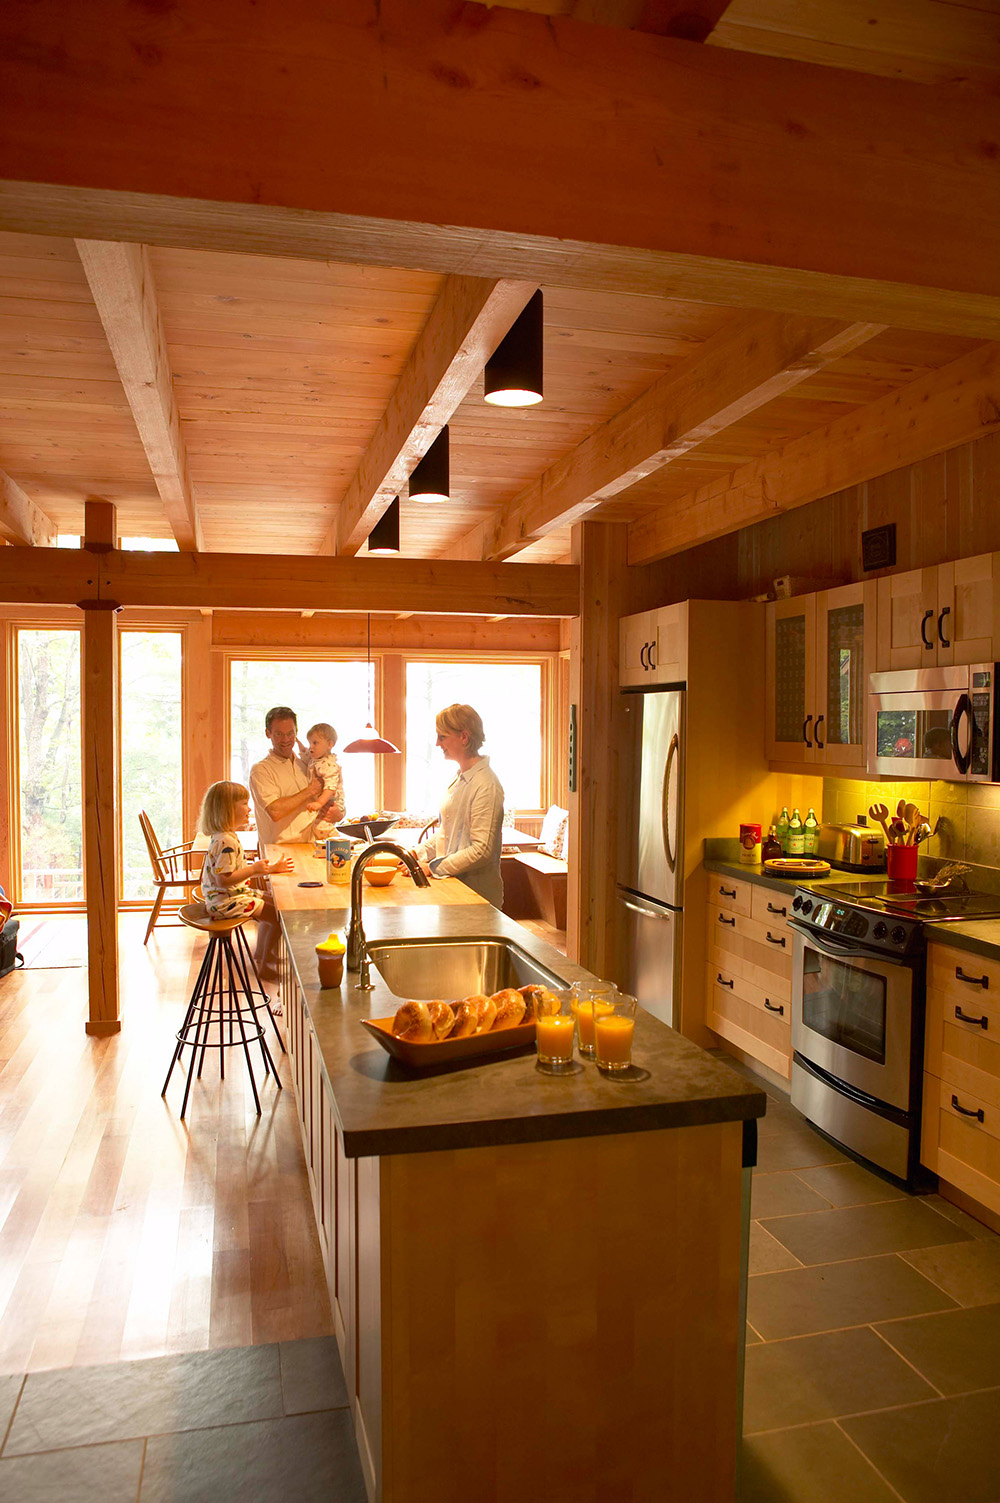 Timber-framed kitchen with slate and butcher-block countertops